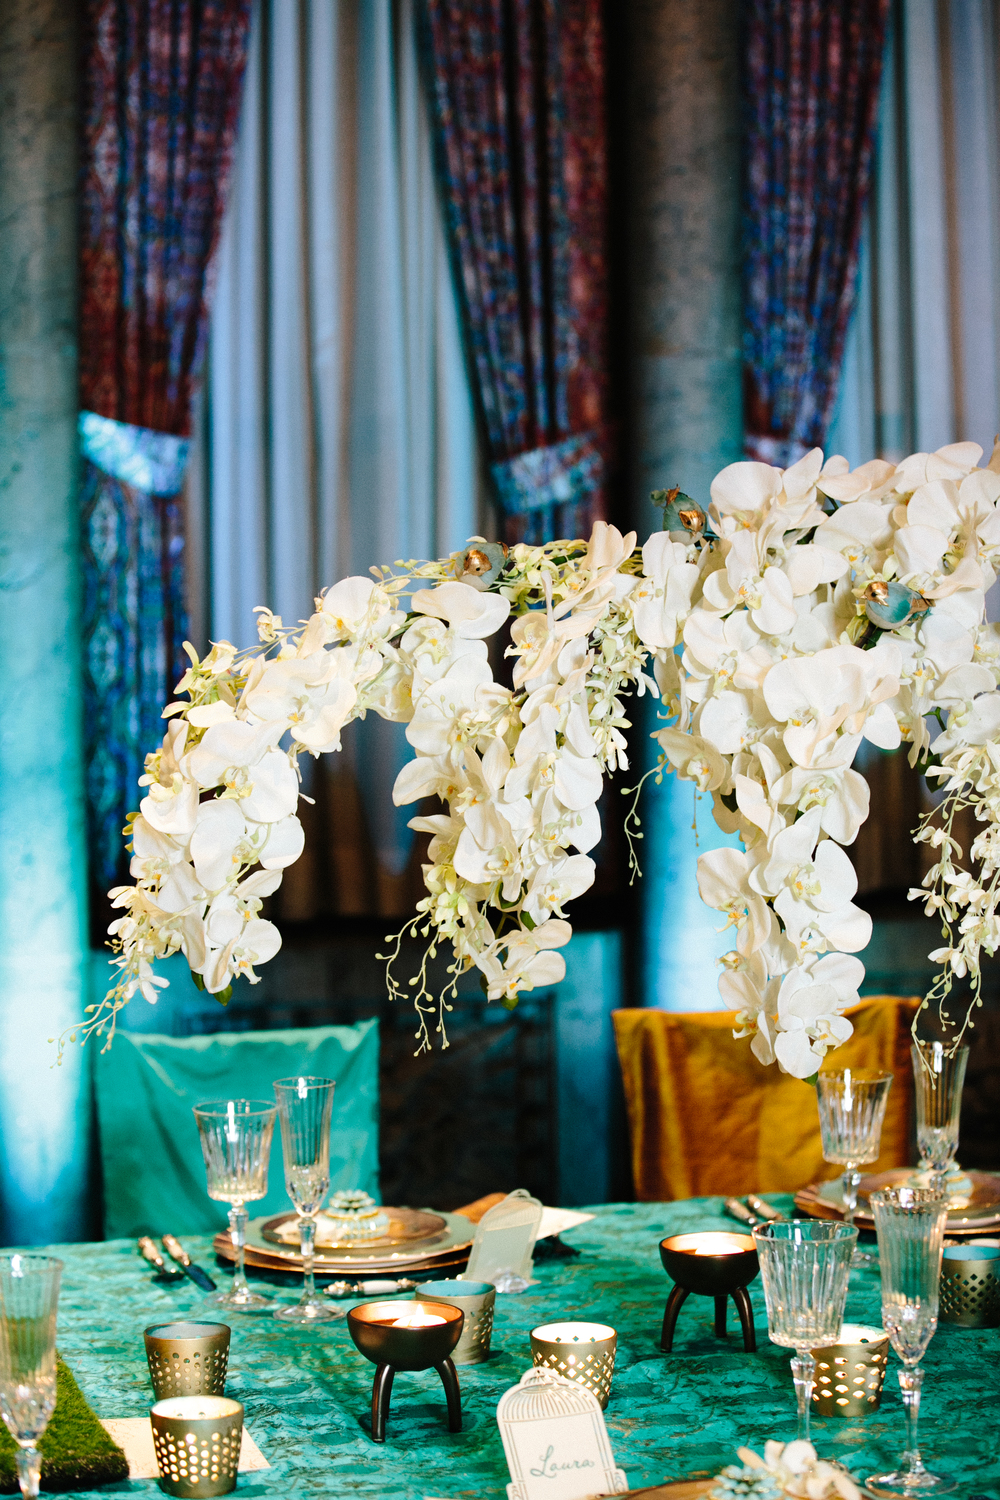 Teal, Gold, and White Wedding Decor | Navjot Design | Couture Wedding Designer and Florist in Dallas | SYPhotography